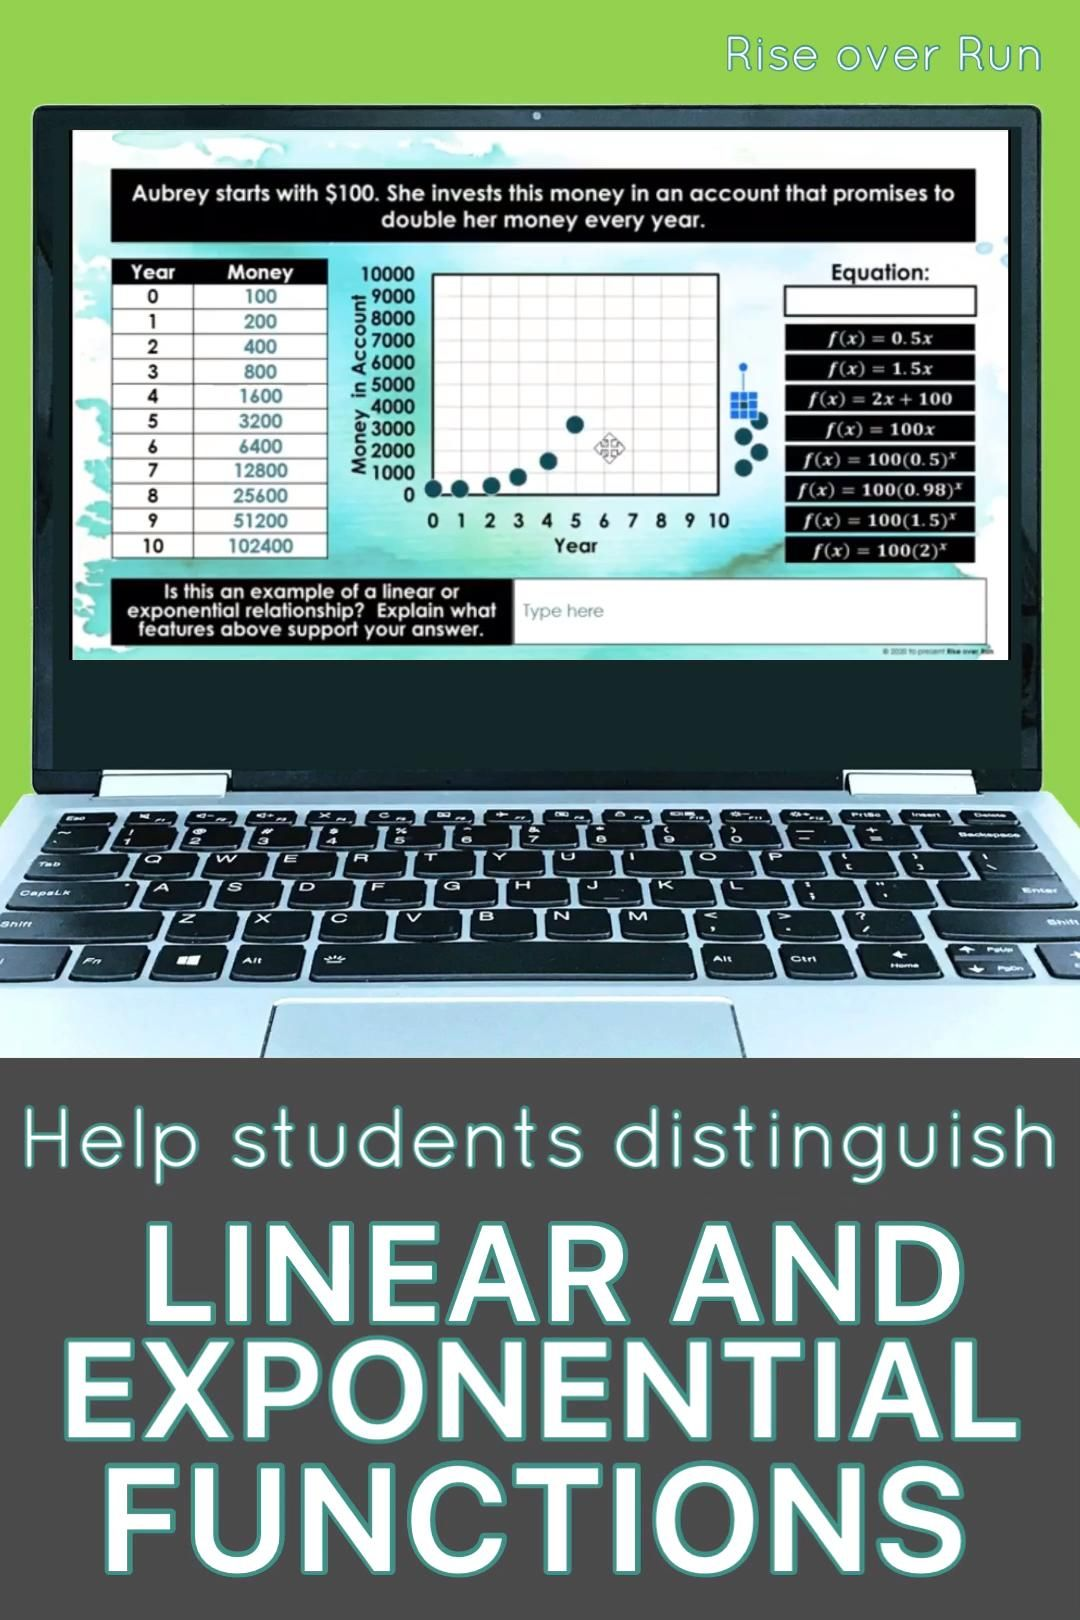 595 Algebra I Lessons Activities And Engaging Resources Ideas In 2021 Teaching Algebra Algebra I Conceptual Learning